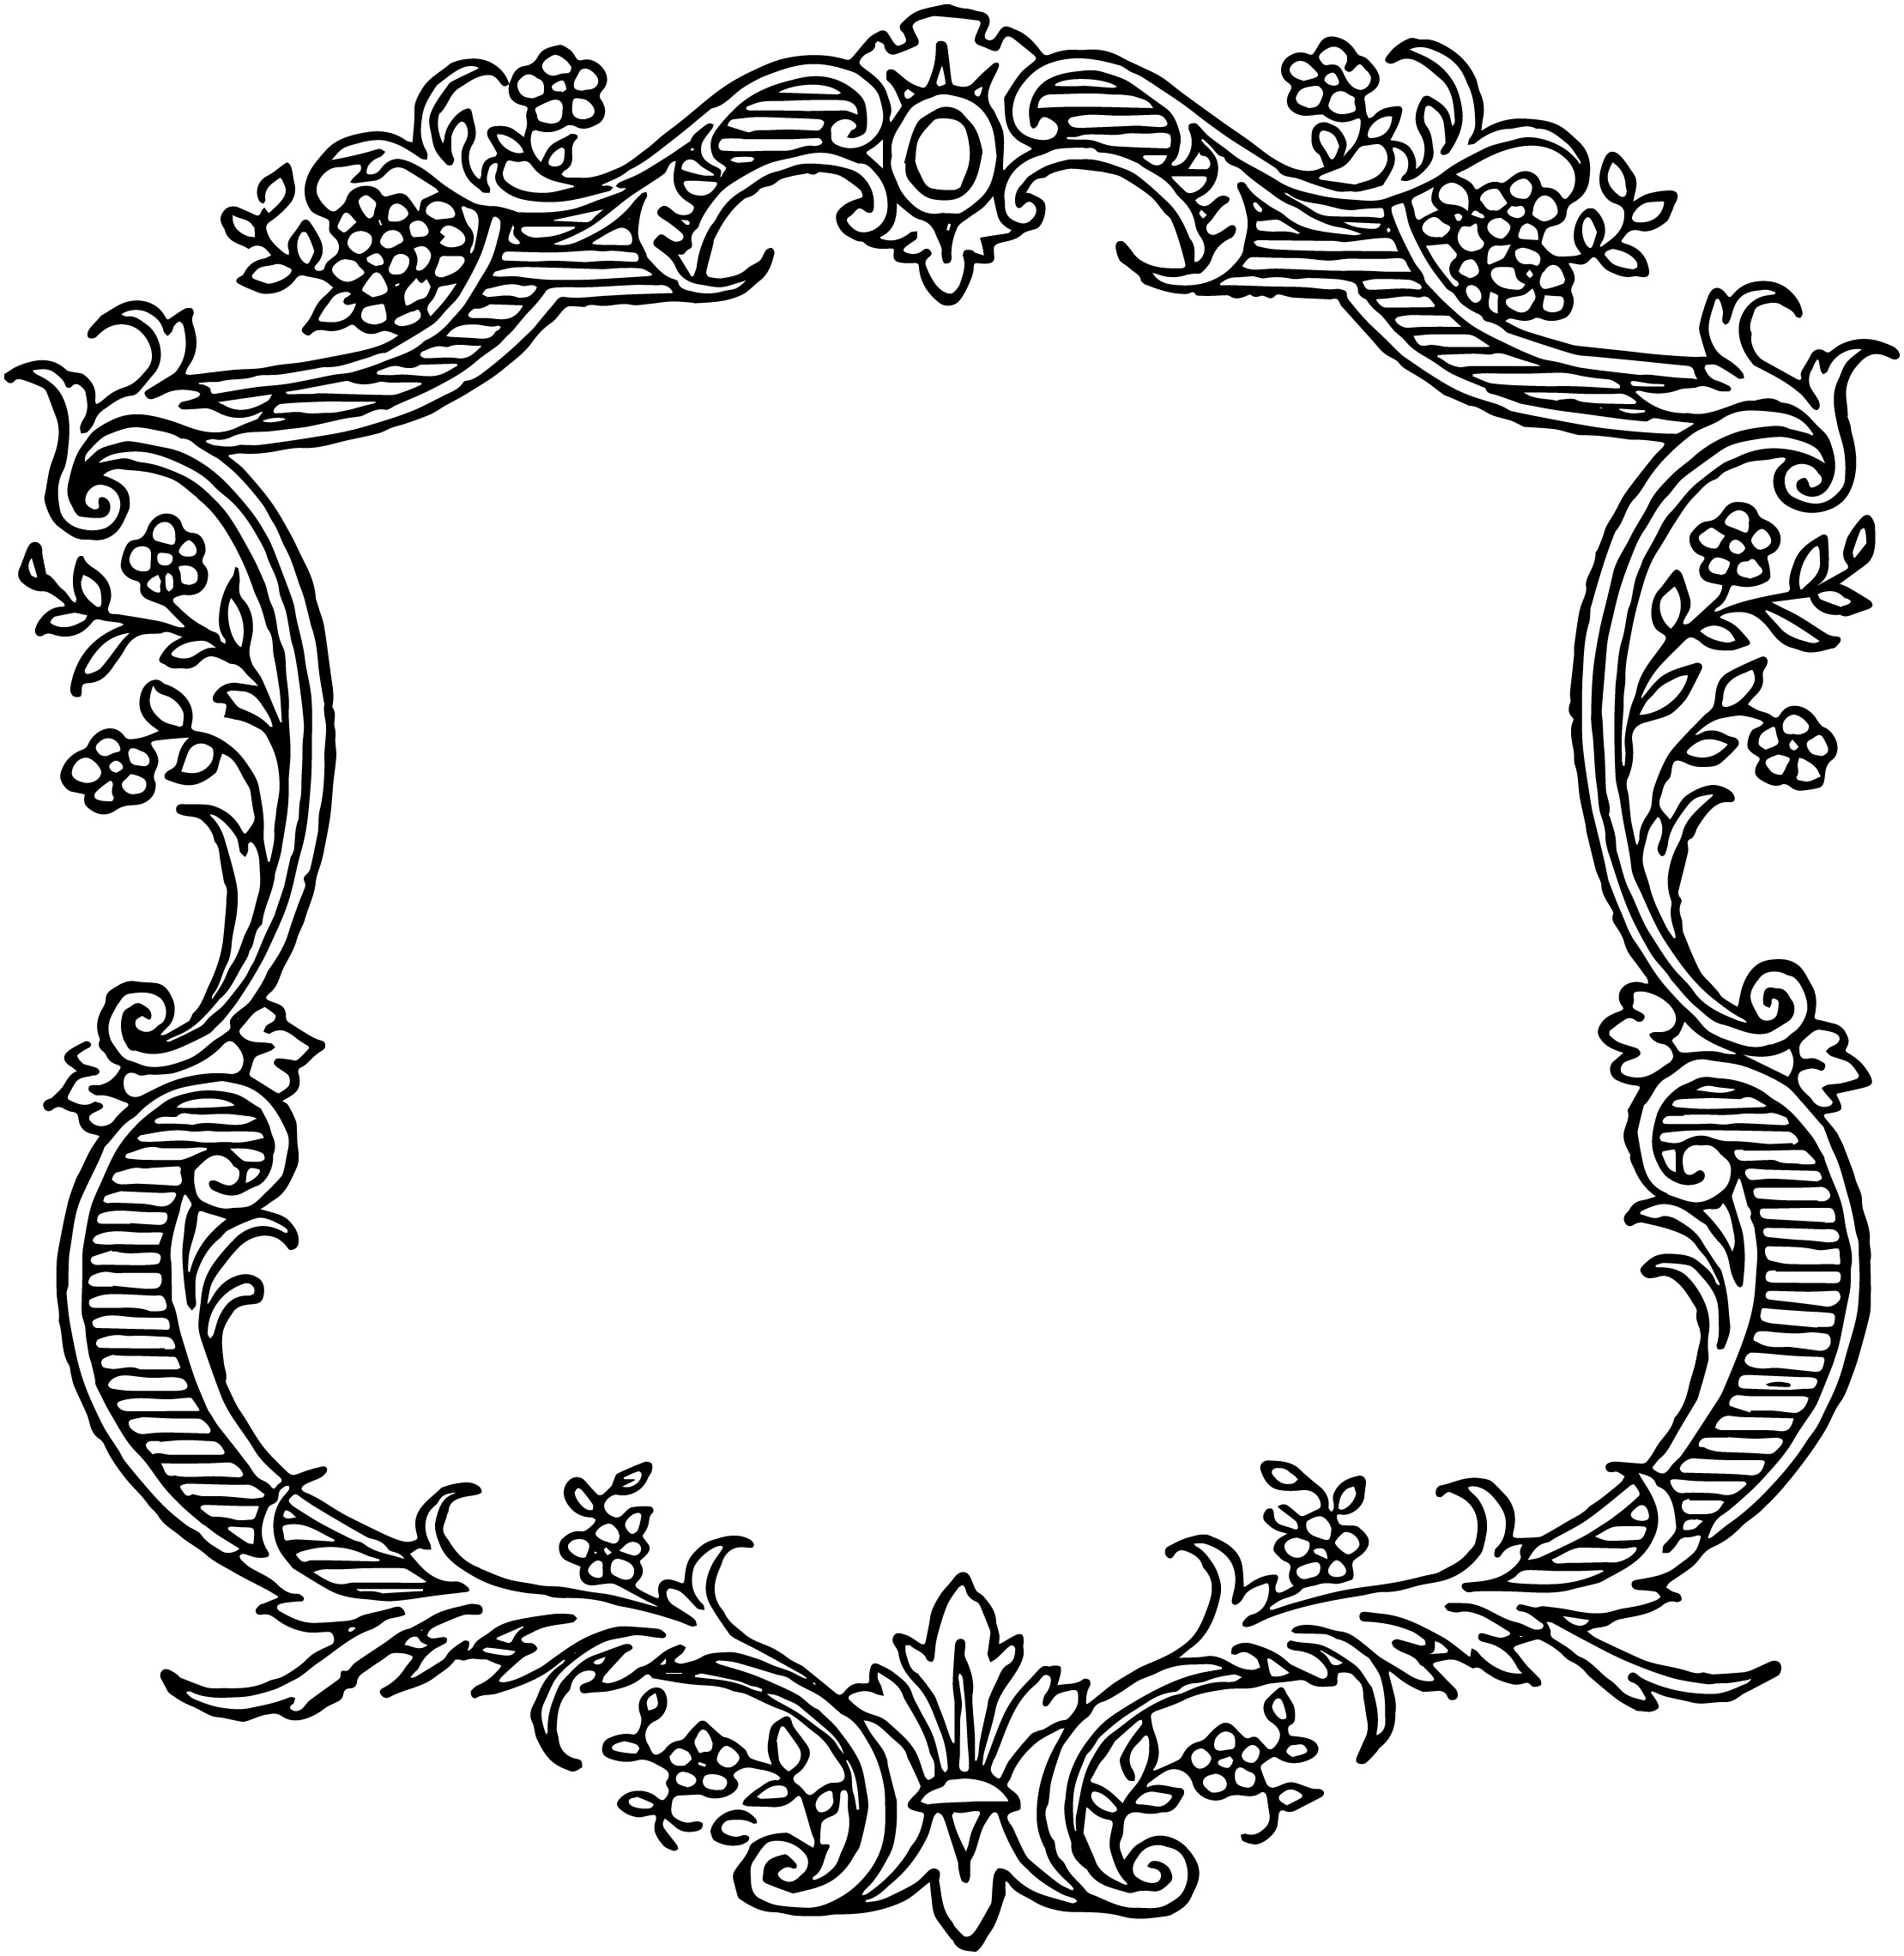 2219x2280 Free Vintage Floral Scroll Border Frame Oh So Nifty Vintage Graphics